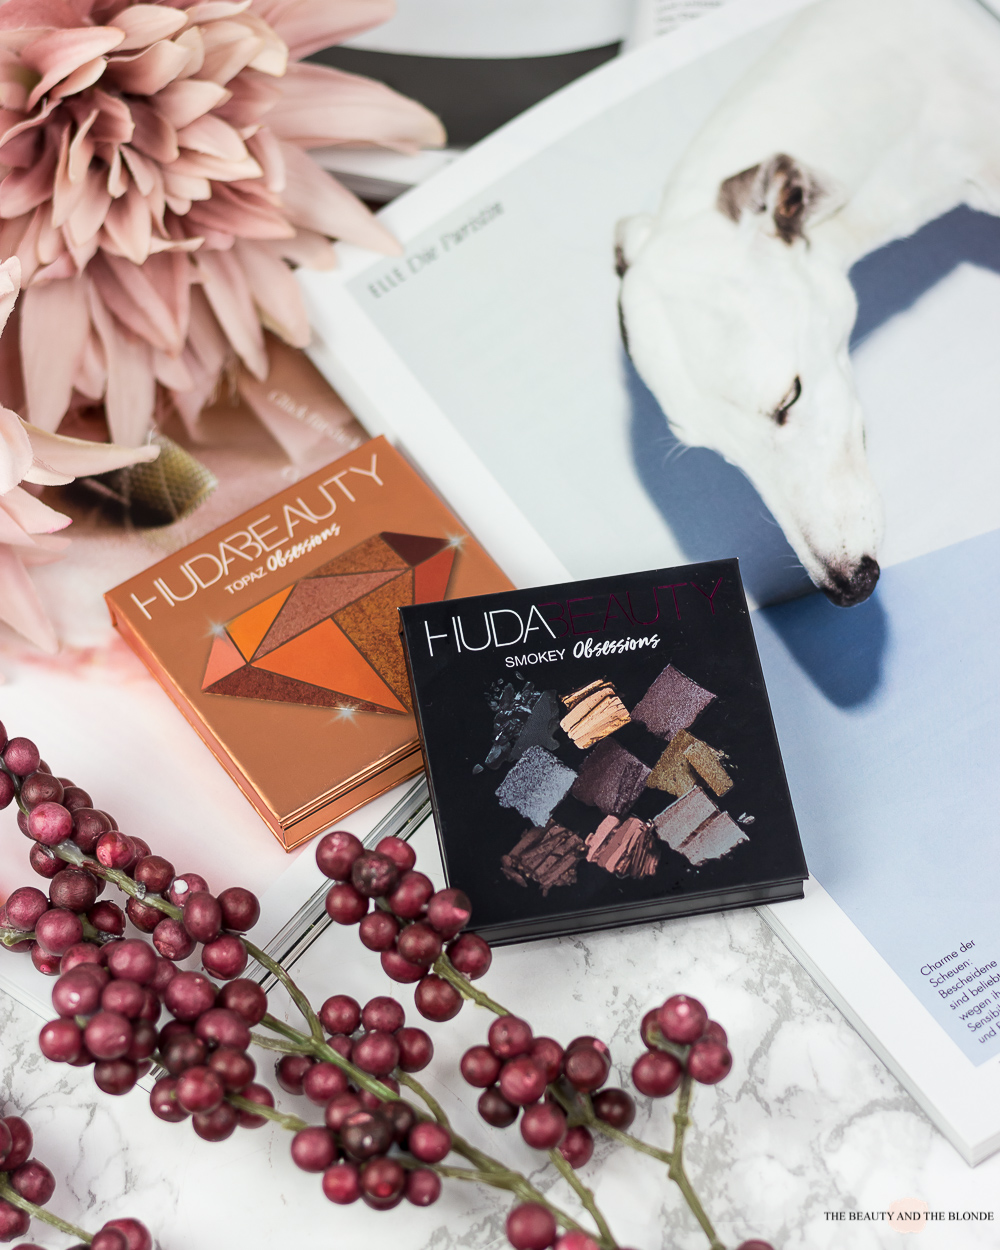 Huda Beauty Smokey Obsessions Palette Review